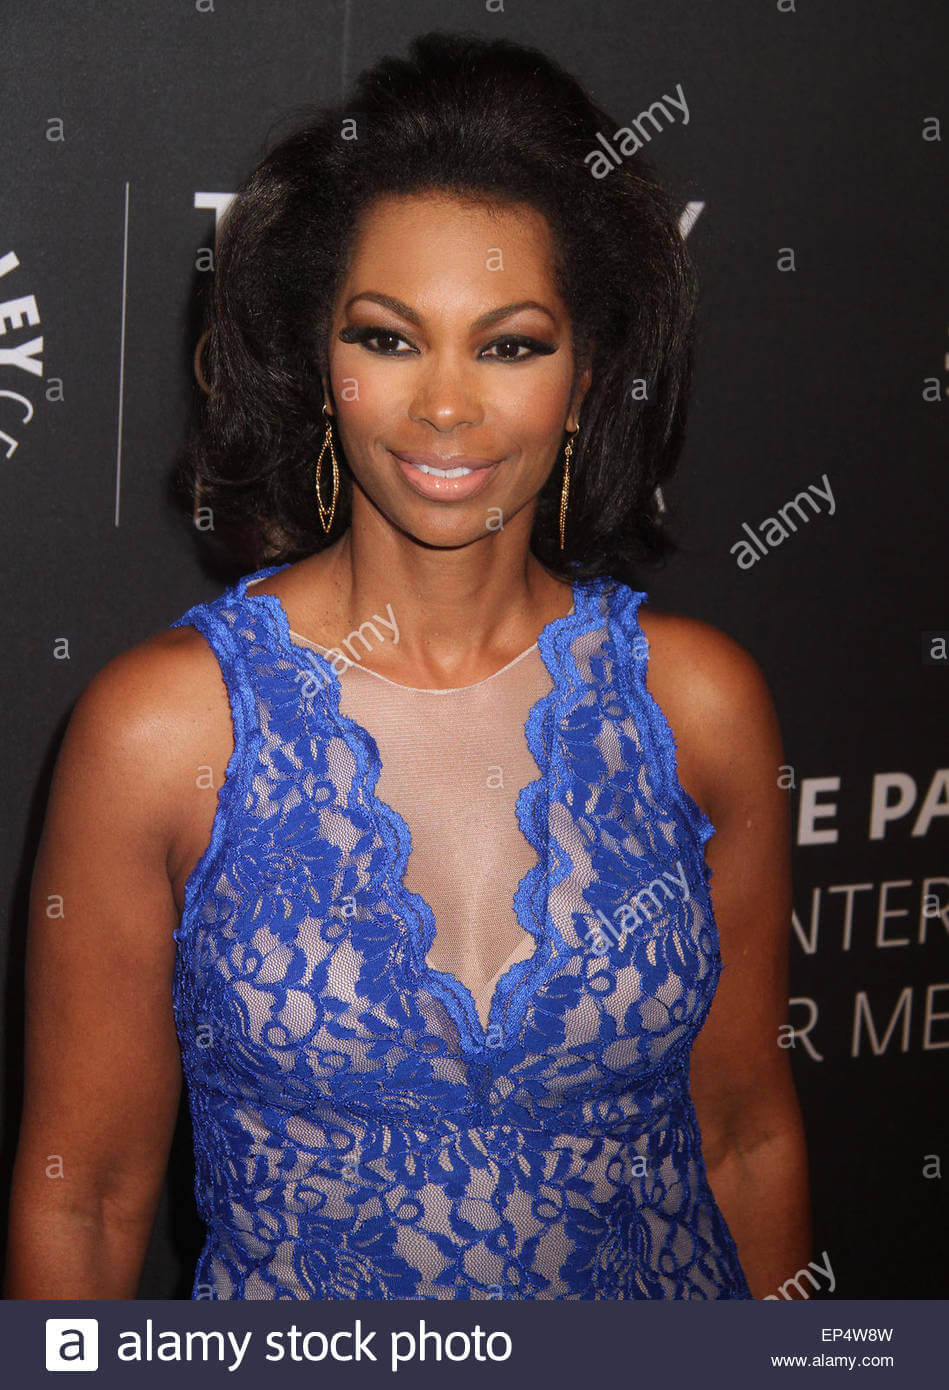 49 Hot Pictures Of Harris Faulkner Which Will Make You -3636